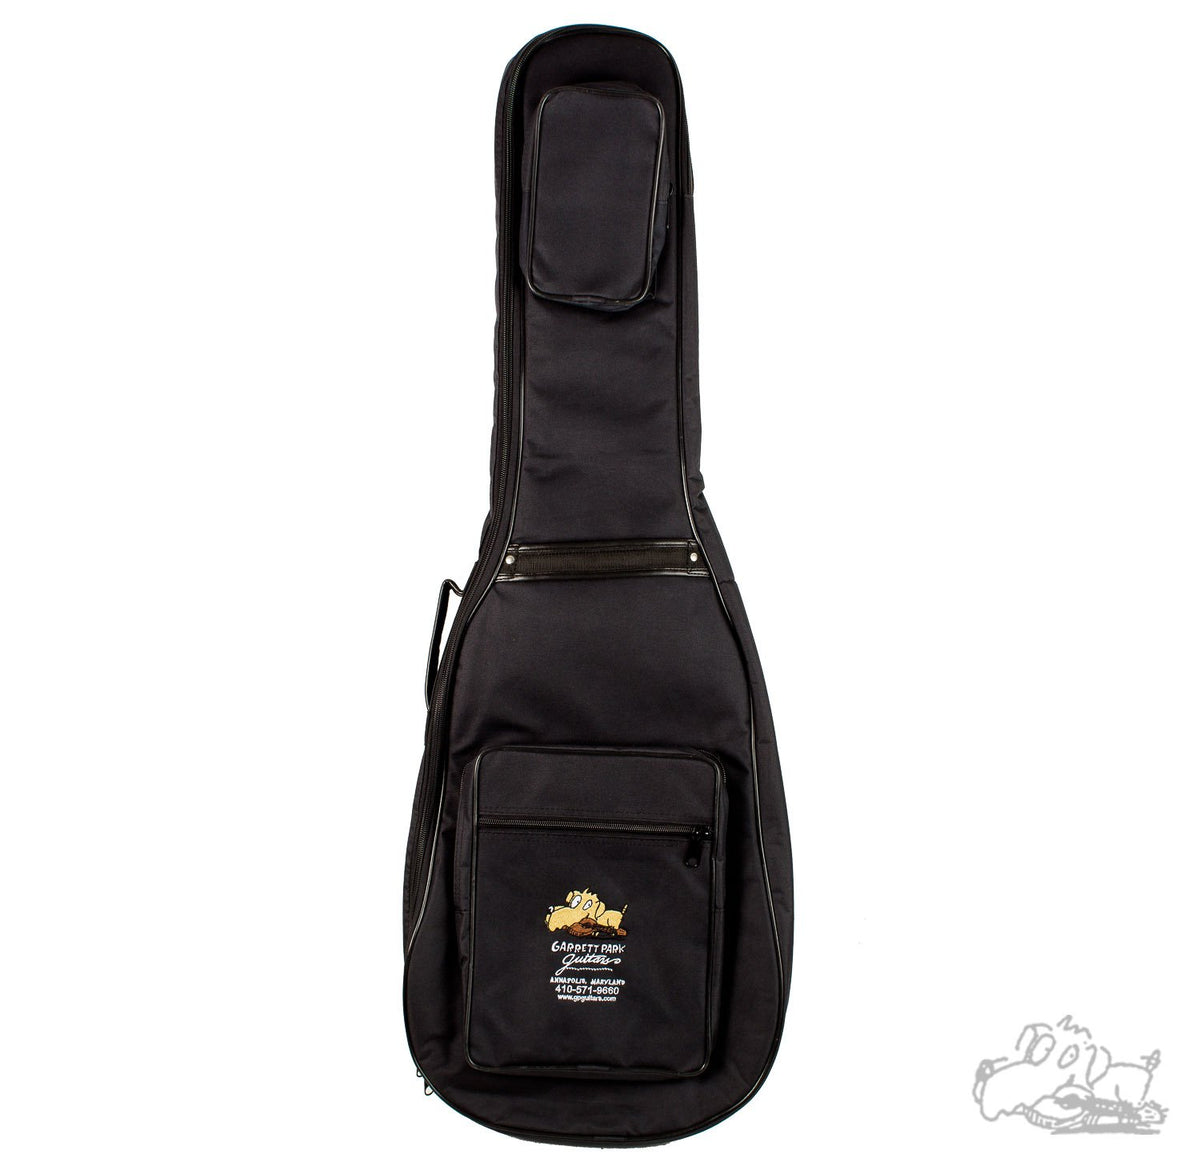 Garrett Park Guitars Embroidered Deluxe Electric Bass Guitar Nylon Soft Case Gig Bag